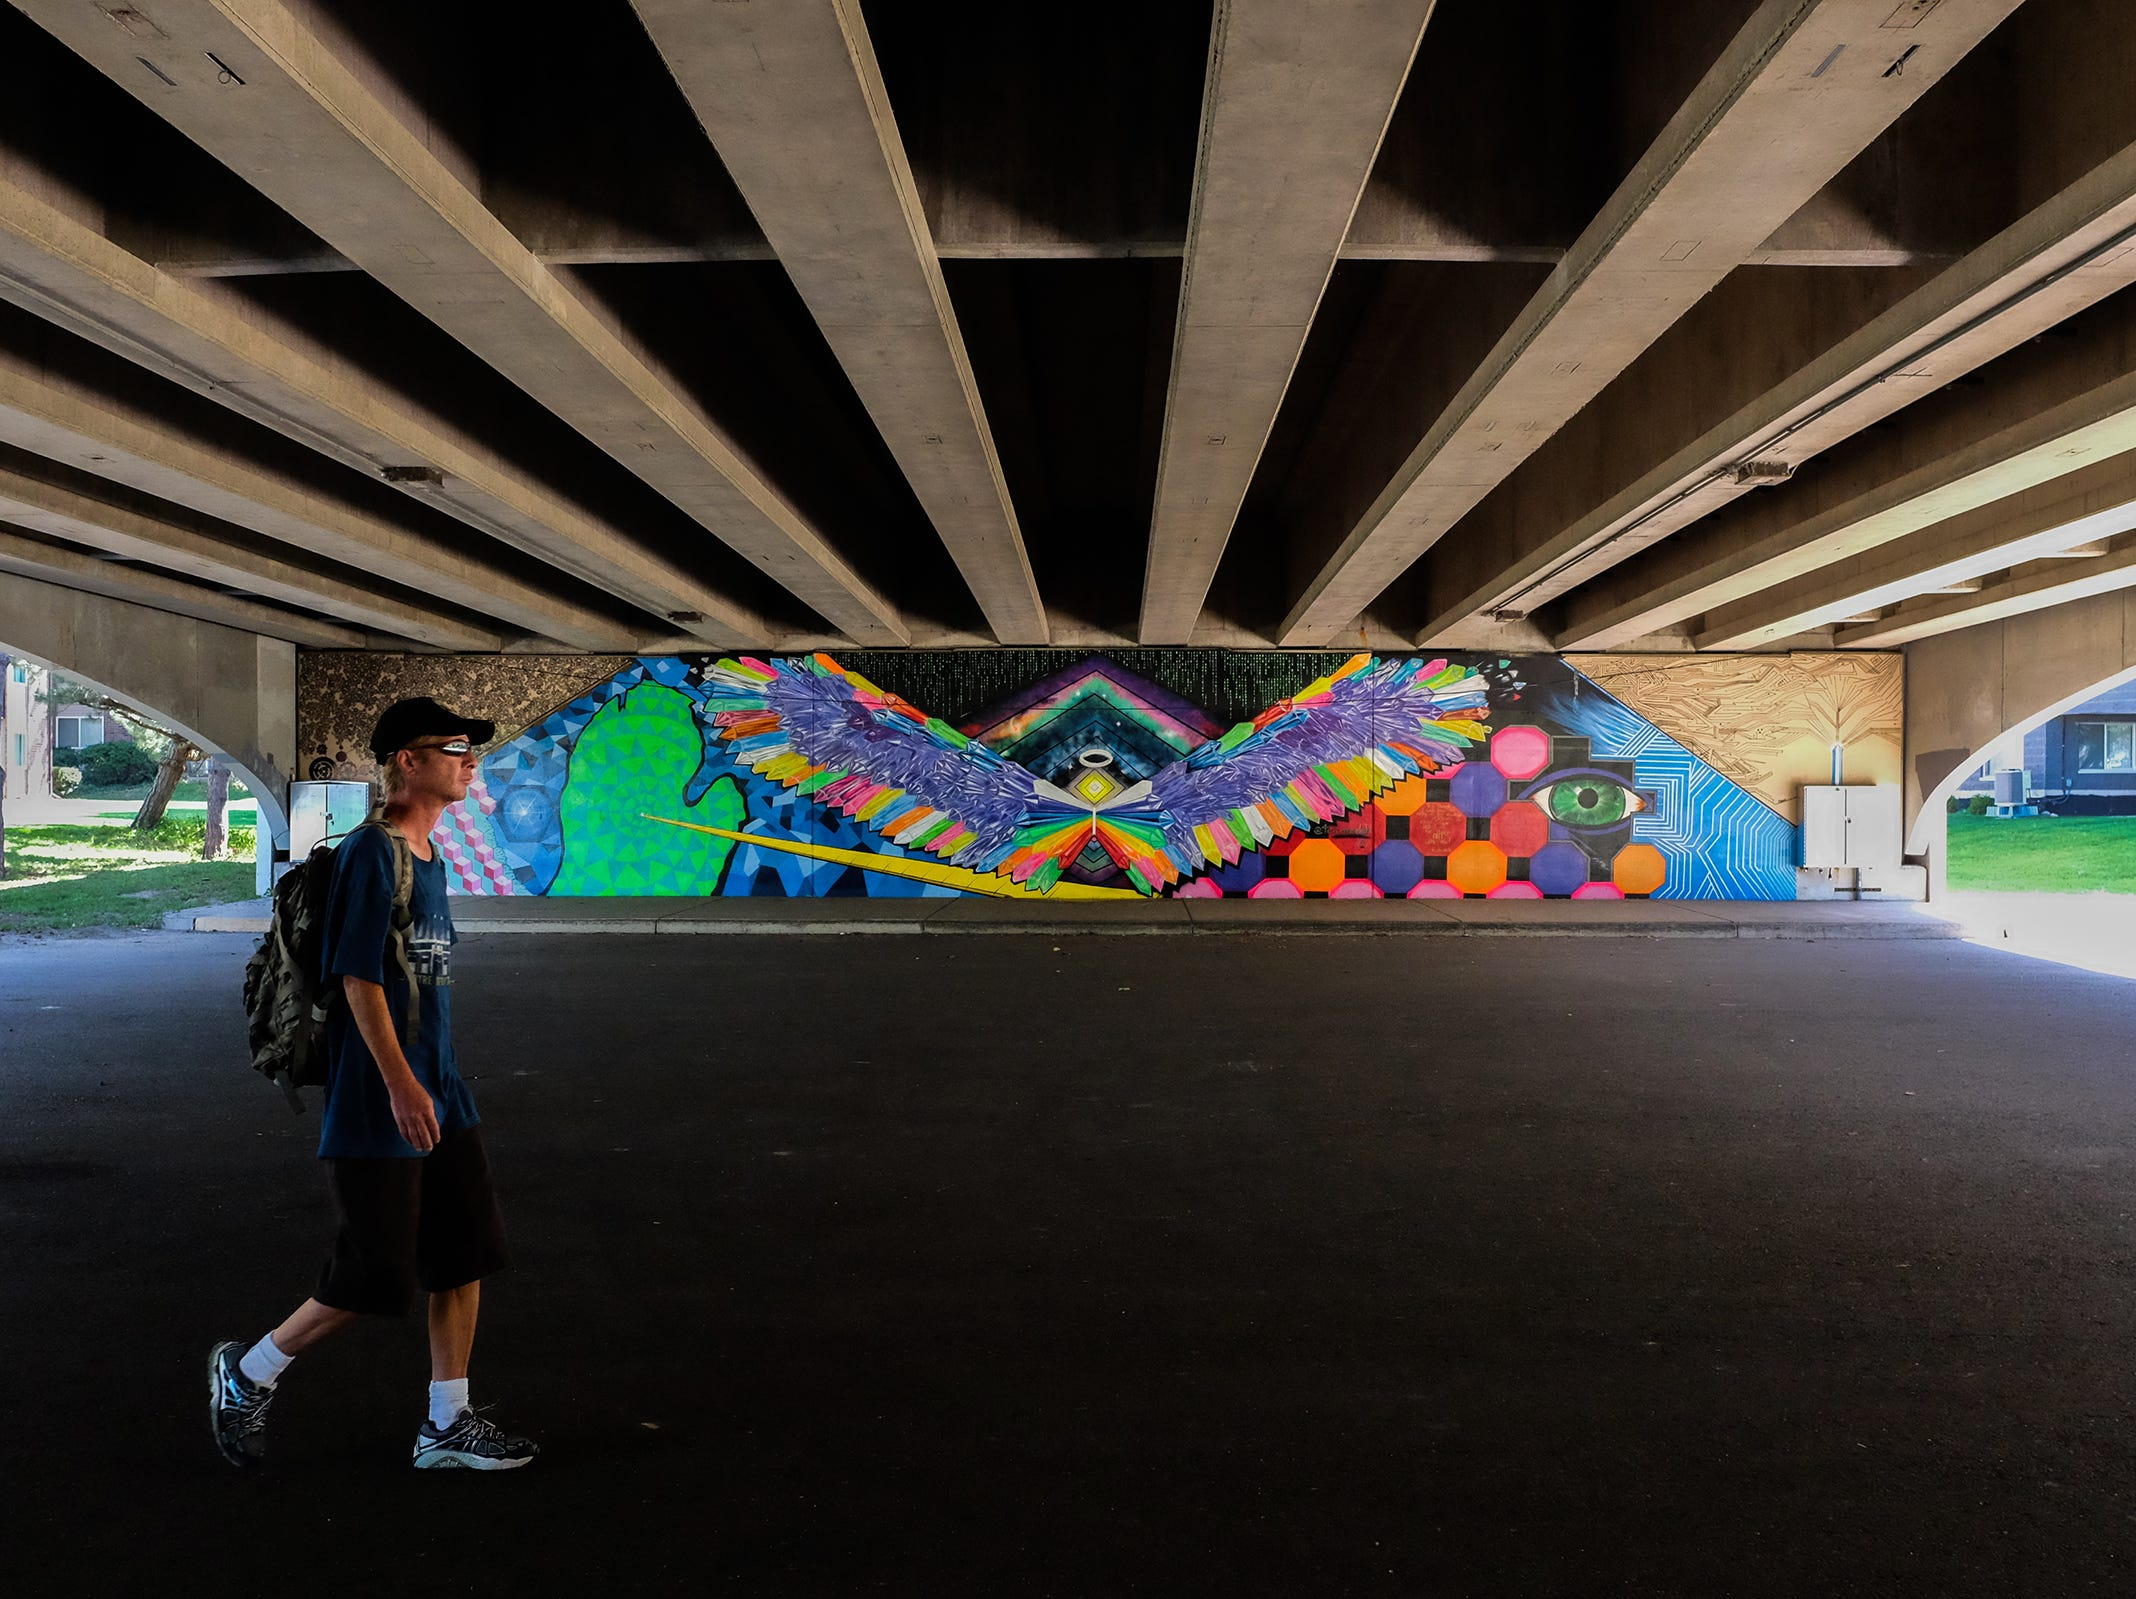 This mural under the Shiawassee Bridge in Lansing was created by Tea Brown.